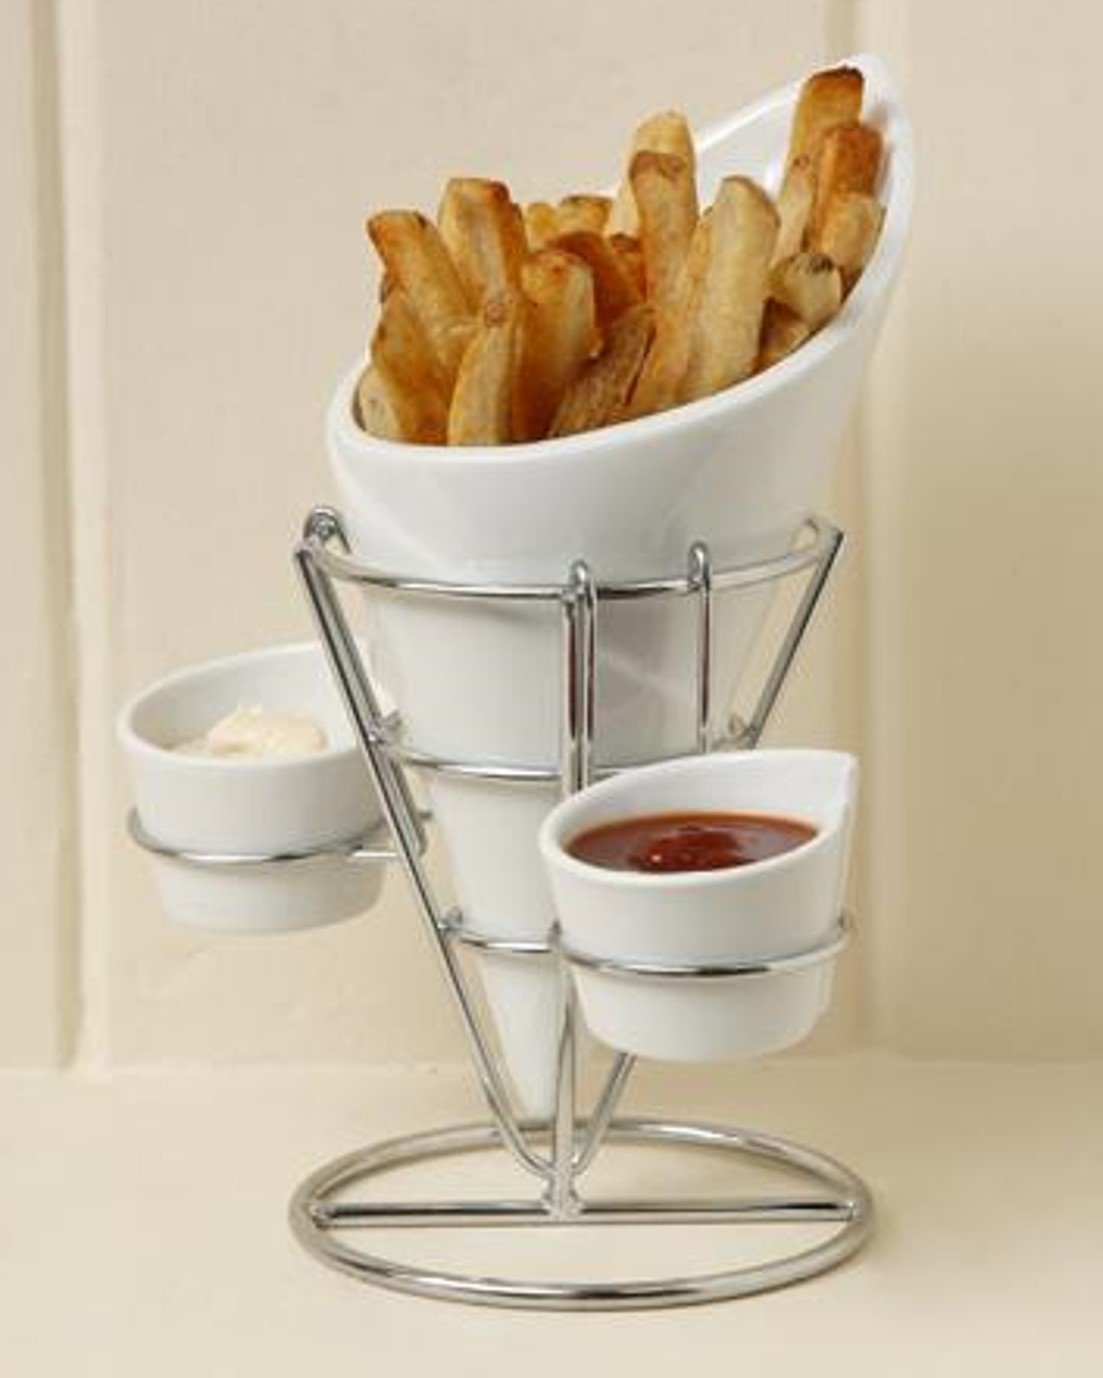 Gibson Table Compliments, 4 Piece French Fry Serving Set with Metal Rack